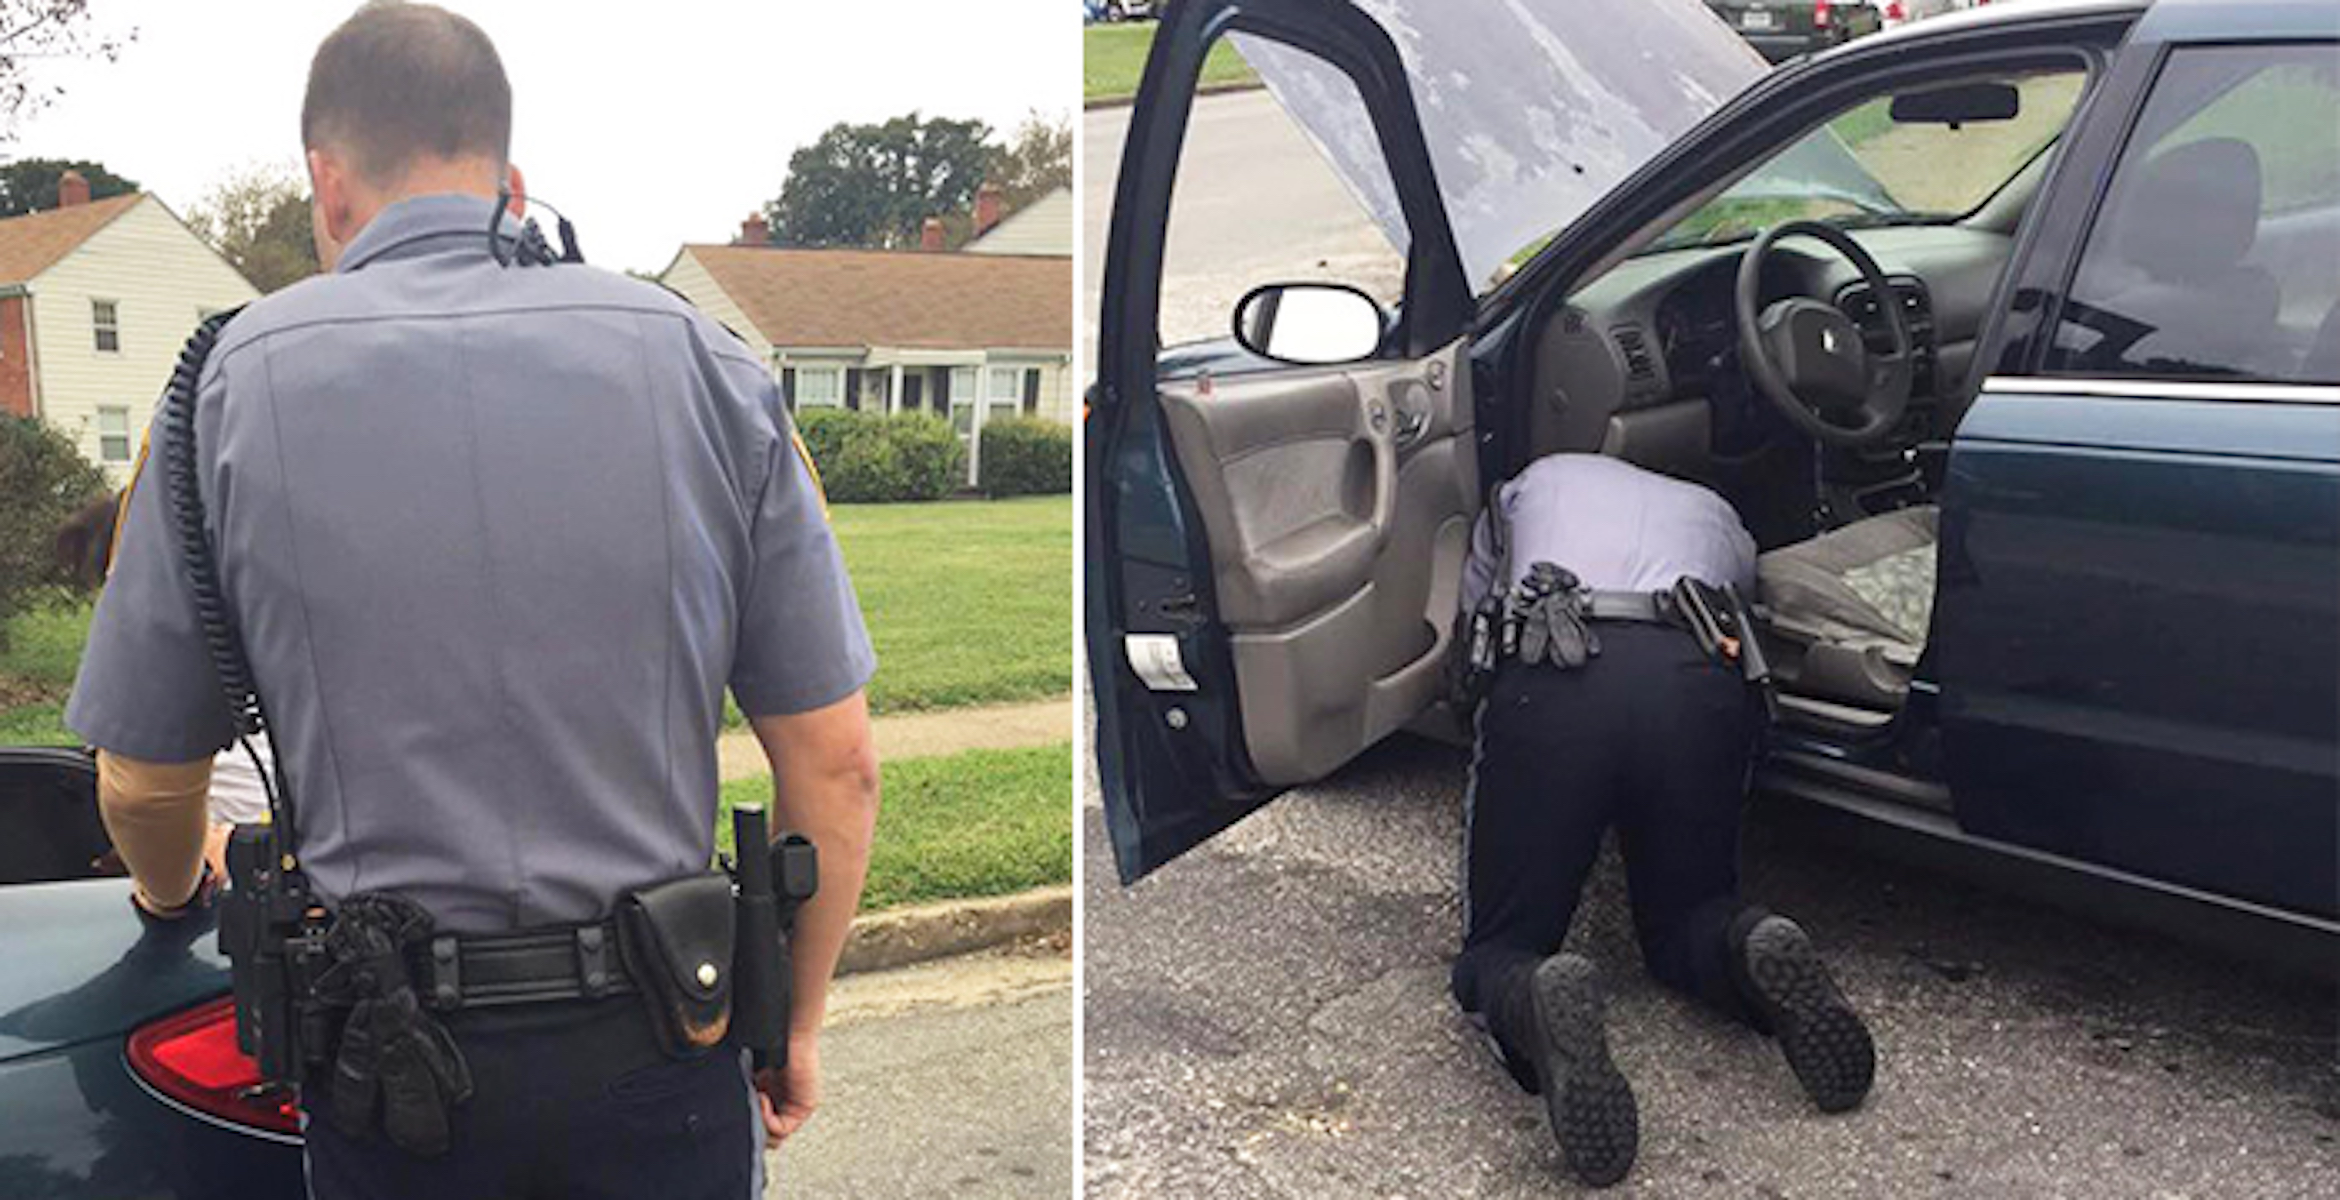 Lady Going for Interview Suddenly Gets Pulled Over. Then Cop Asks Her to Pop Up Trunk